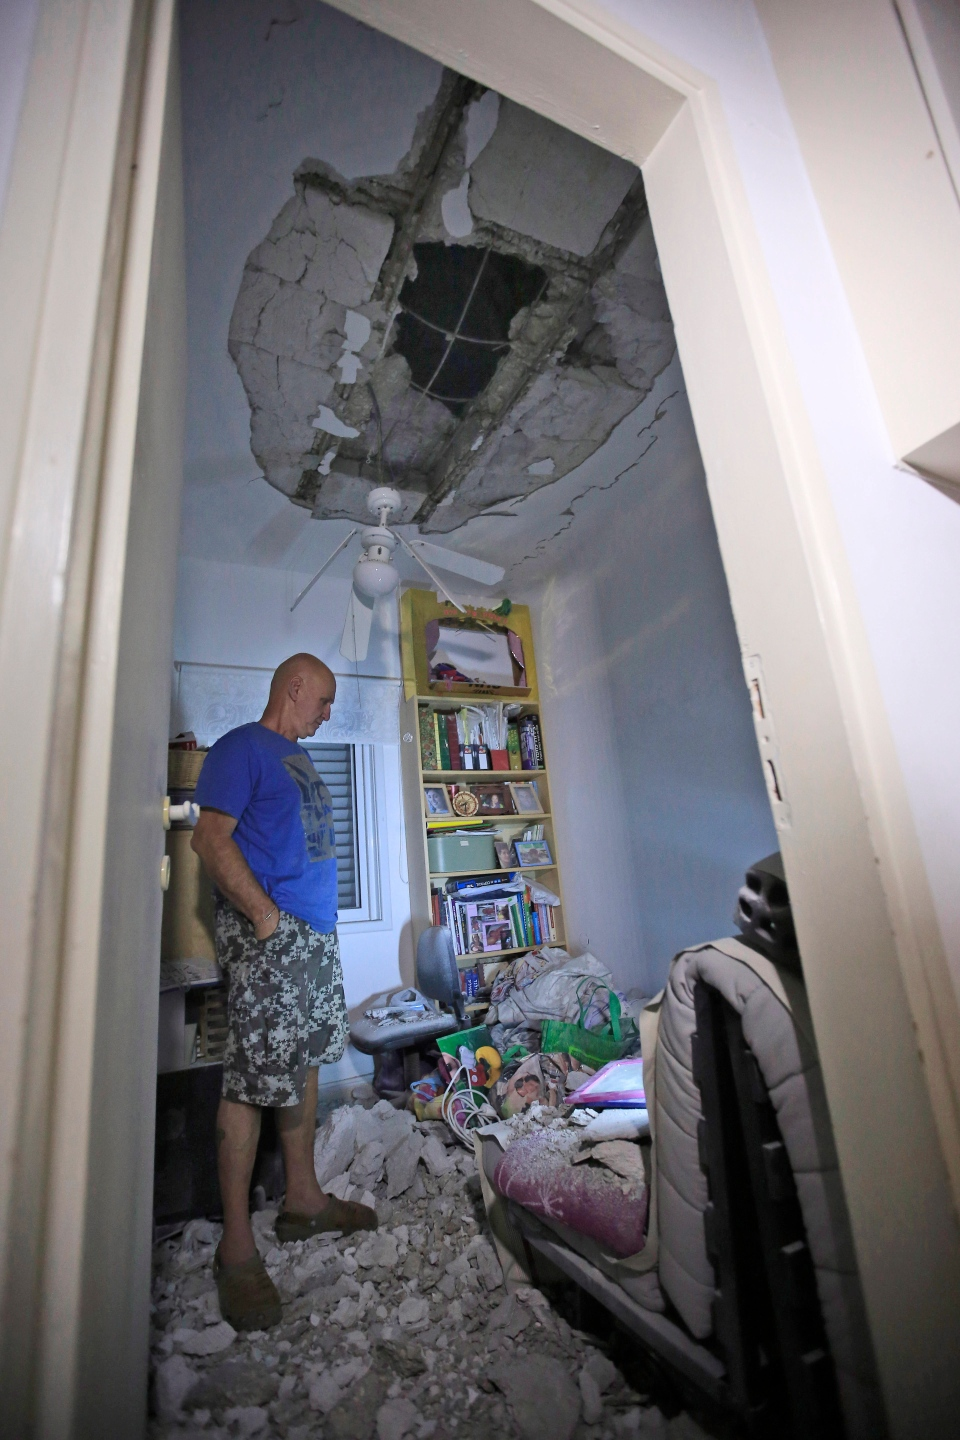 An Israeli looks at damage to his home from a rocket attack in a kibbutz near border with the Gaza Strip on Wednesday, July 9, 2014. (AP / Tsafrir Abayov)